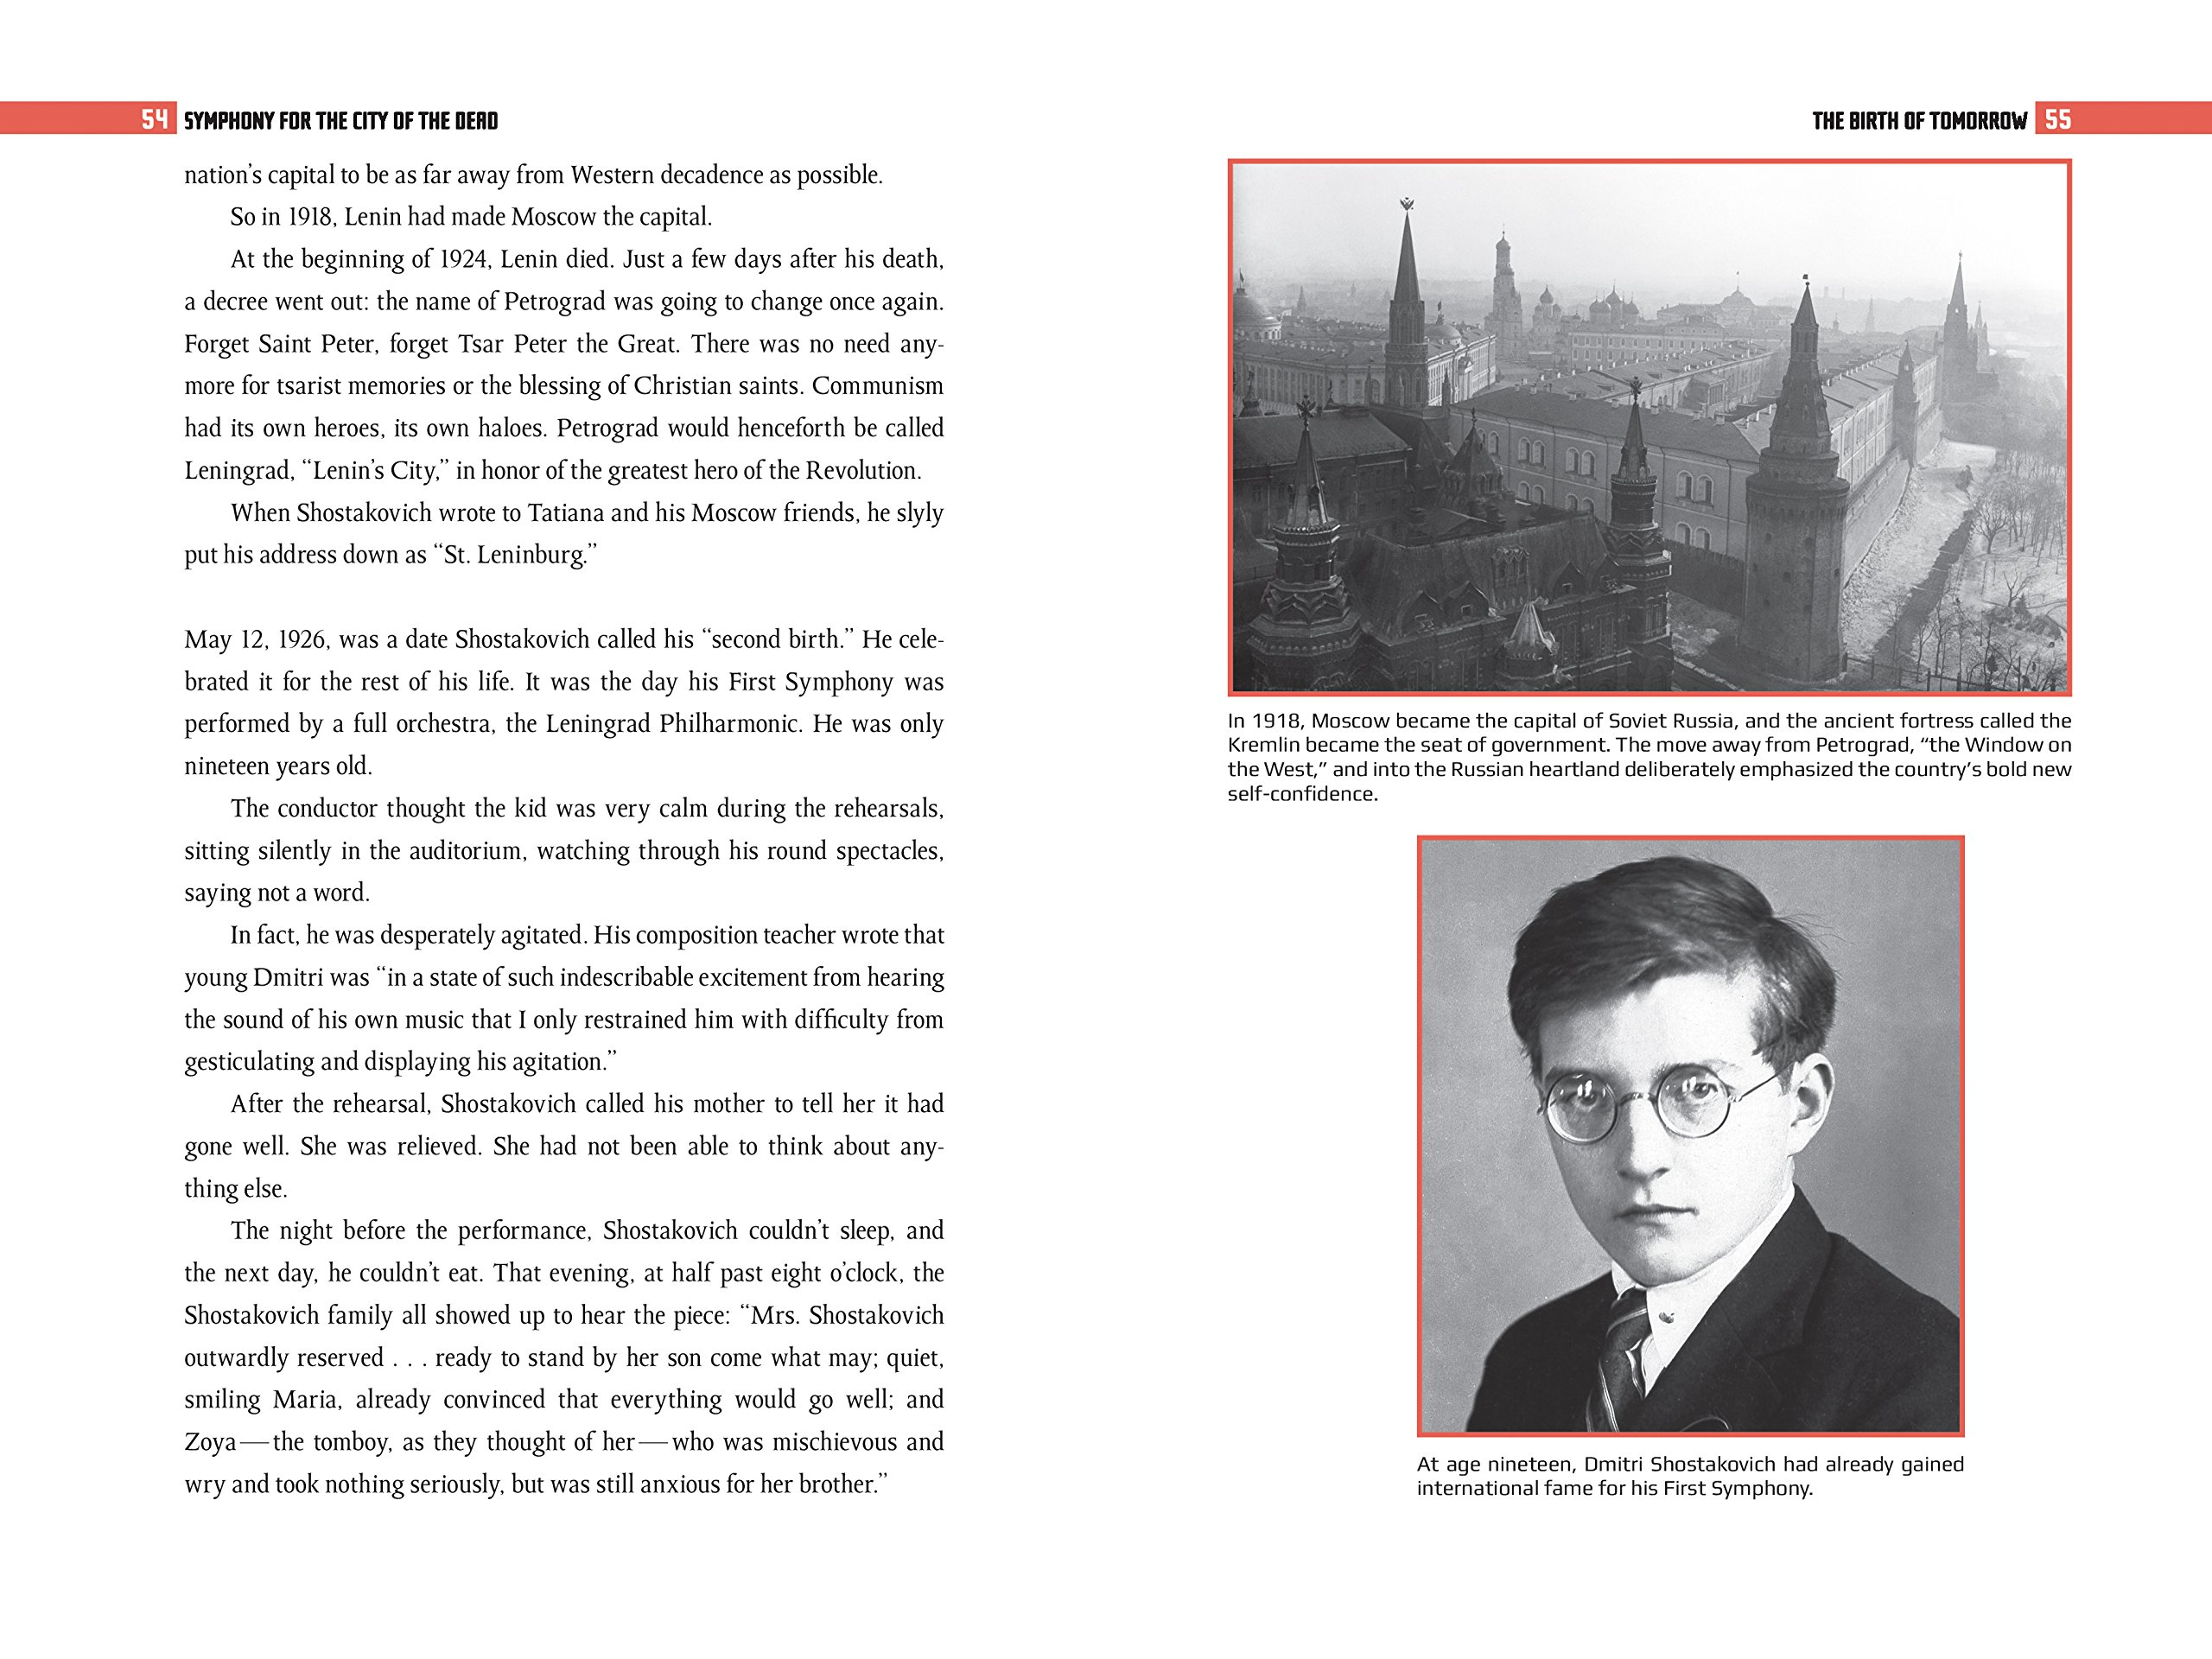 Symphony for the City of the Dead: Dmitri Shostakovich and the Siege of  Leningrad: Amazon.co.uk: M T Anderson: 9780763668181: Books